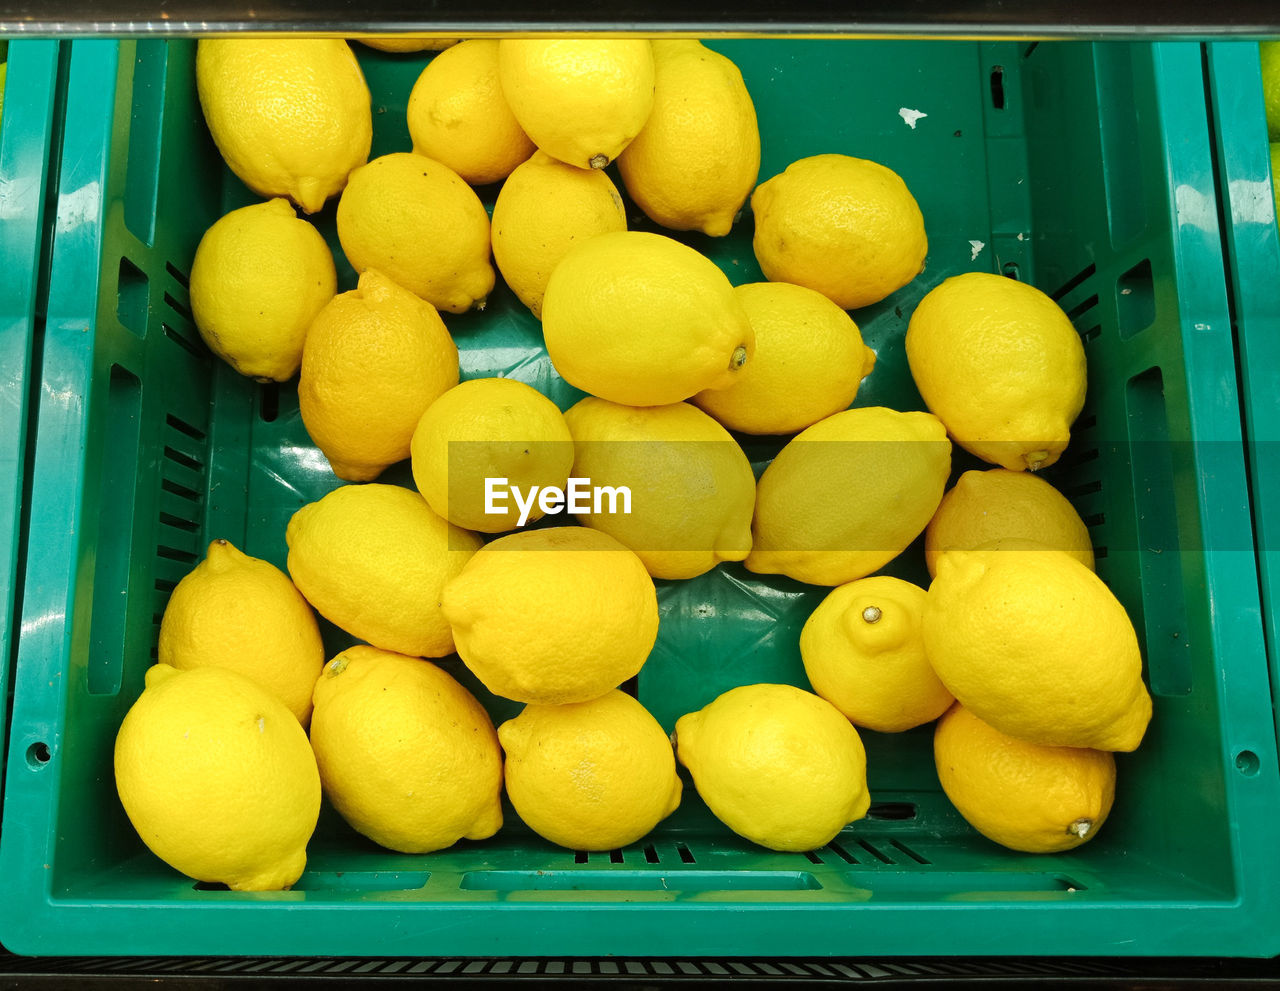 food and drink, healthy eating, food, yellow, wellbeing, container, fruit, box, large group of objects, freshness, citrus fruit, crate, still life, indoors, no people, close-up, abundance, retail, lemon, market, box - container, orange, ripe